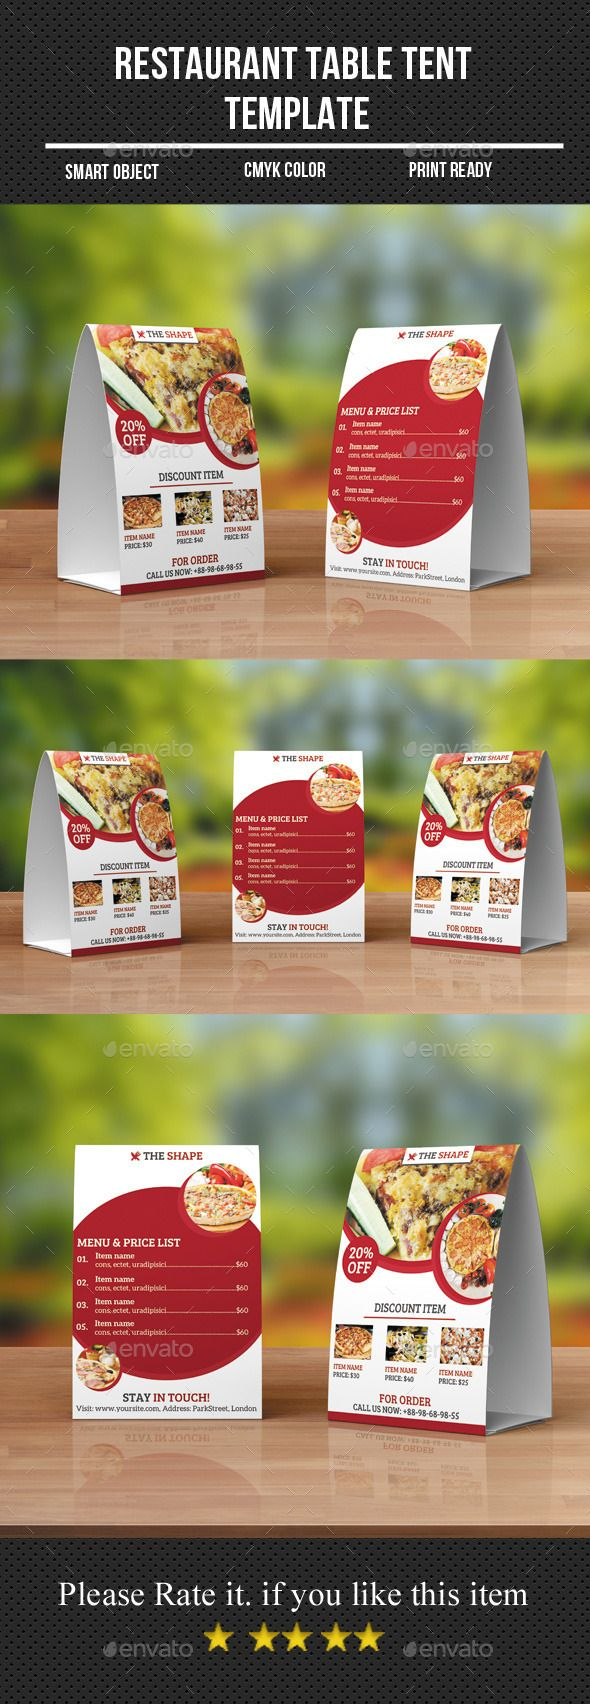 Restaurant Table Tent Menu Template PSD Design Download Http - Restaurant table tent template